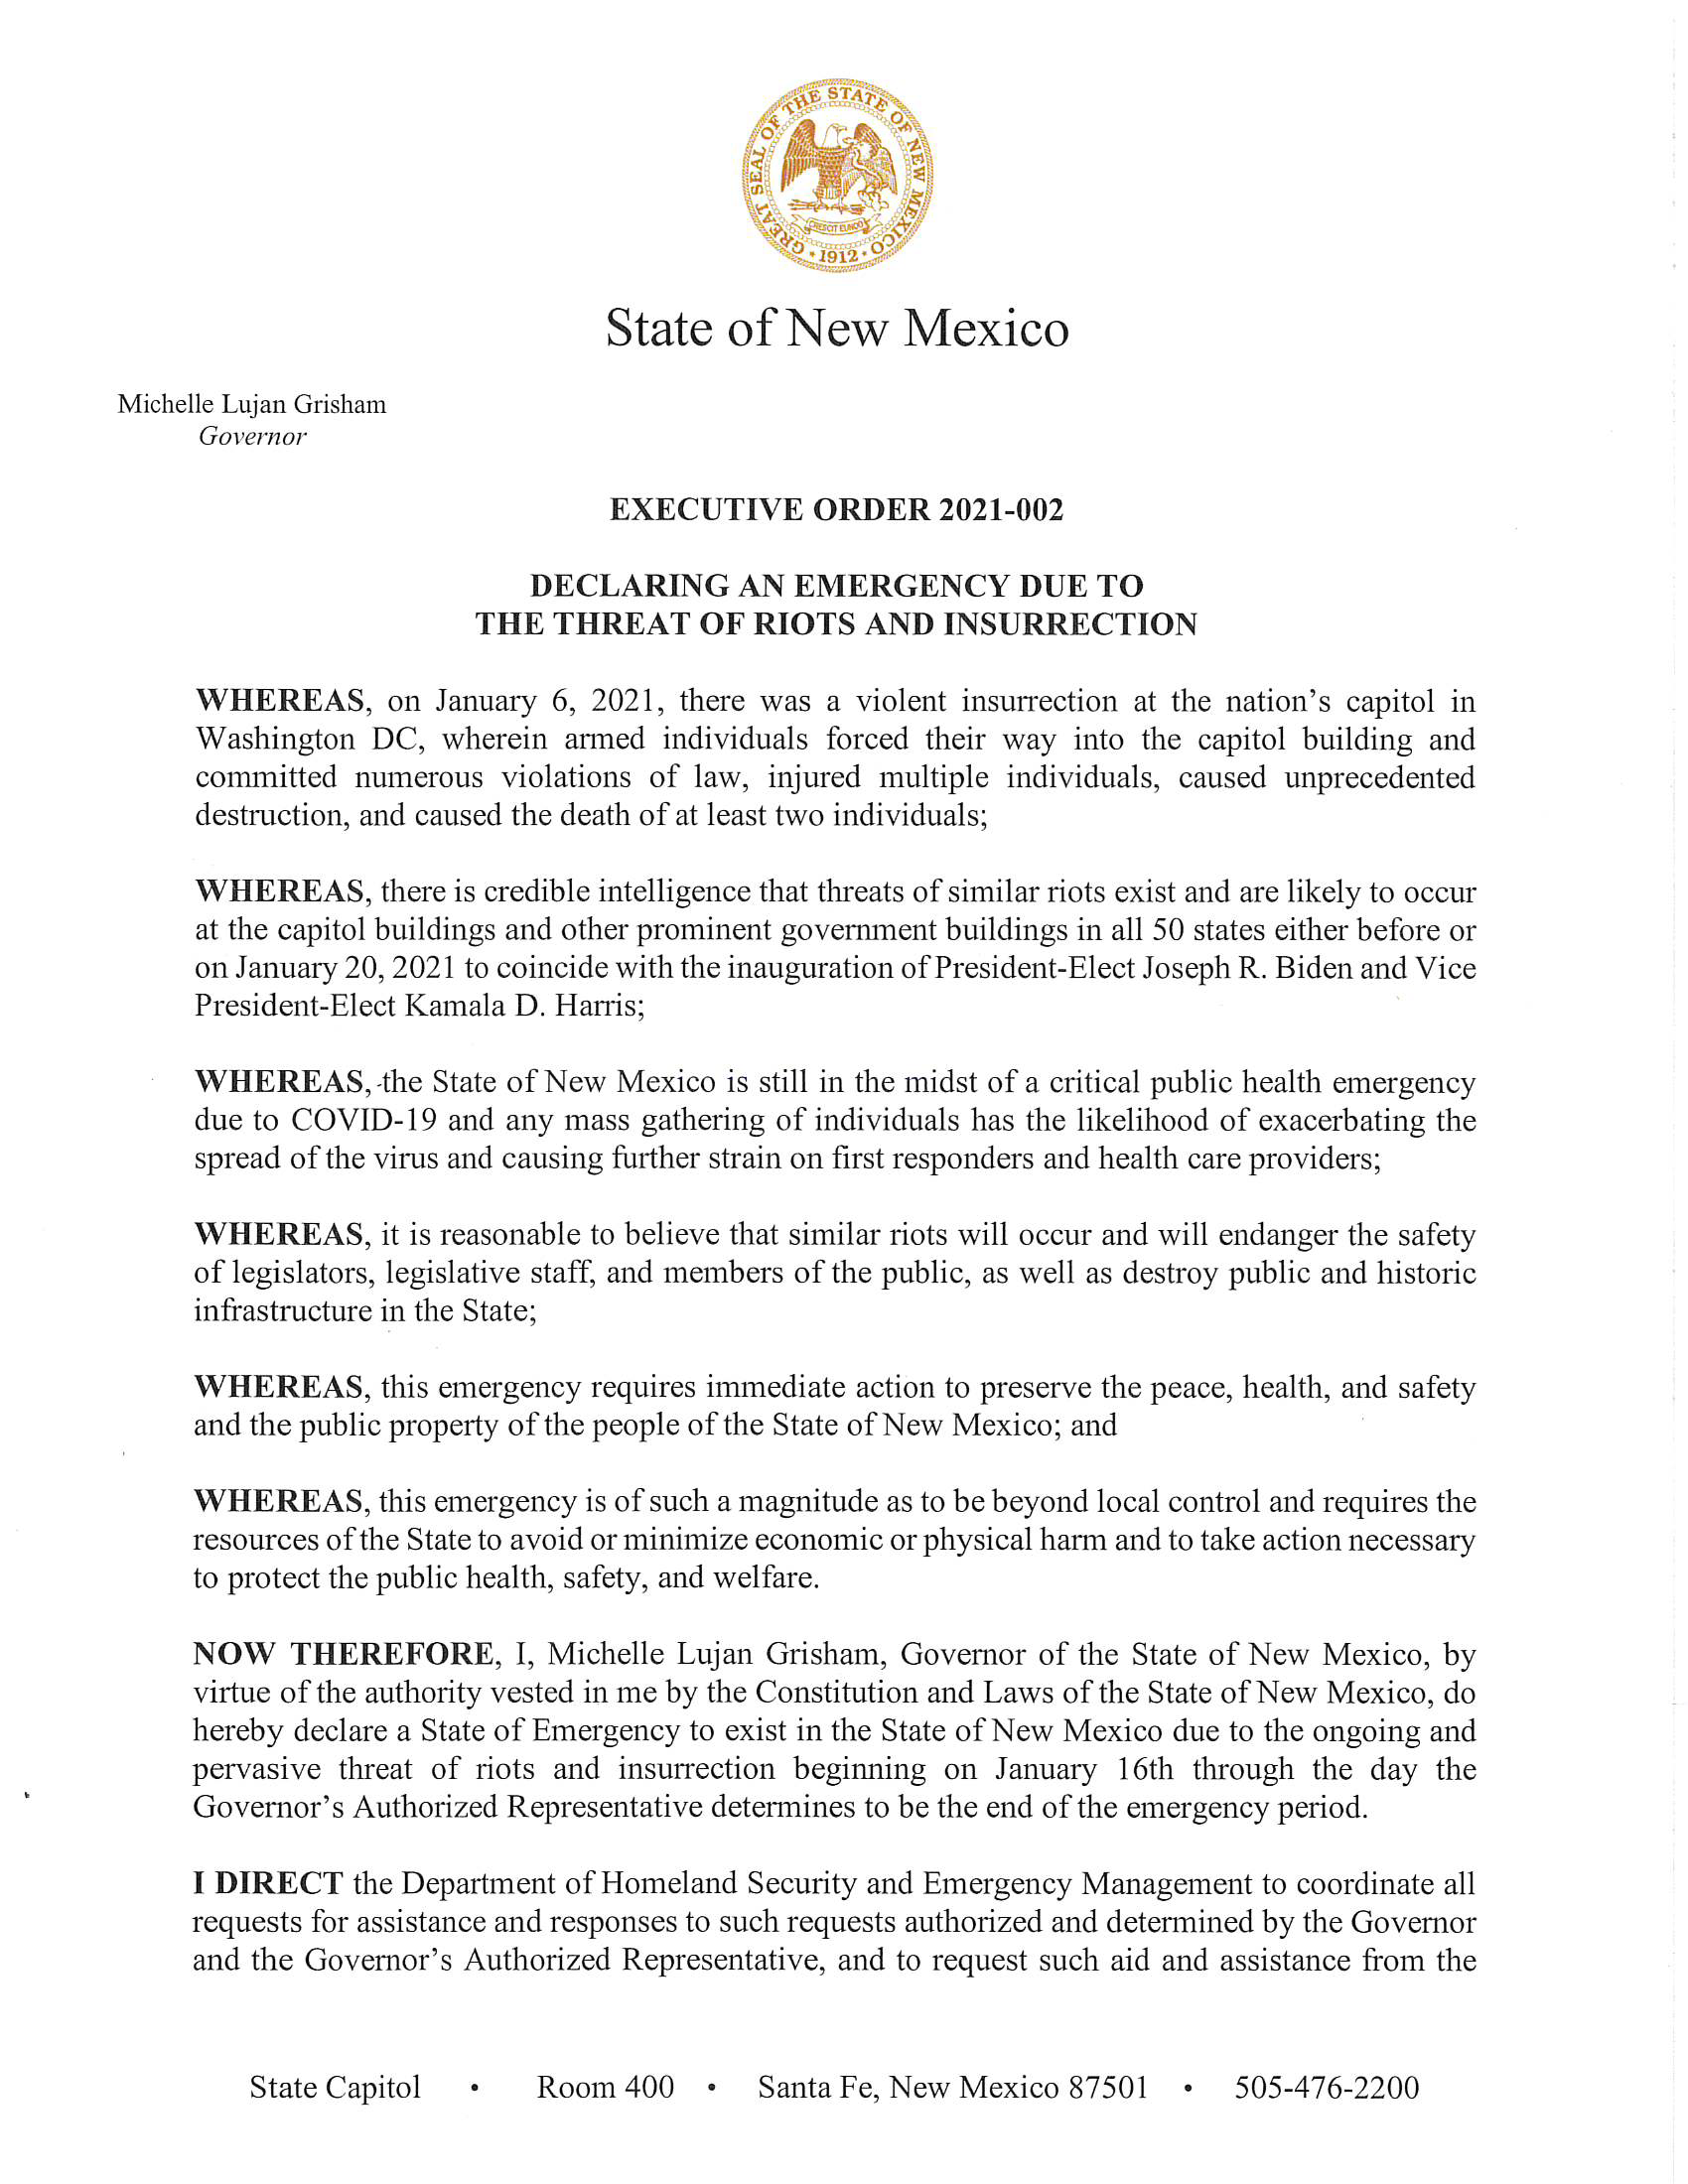 Executive Order threat of riots January 14, 2021 Page 1 of 2